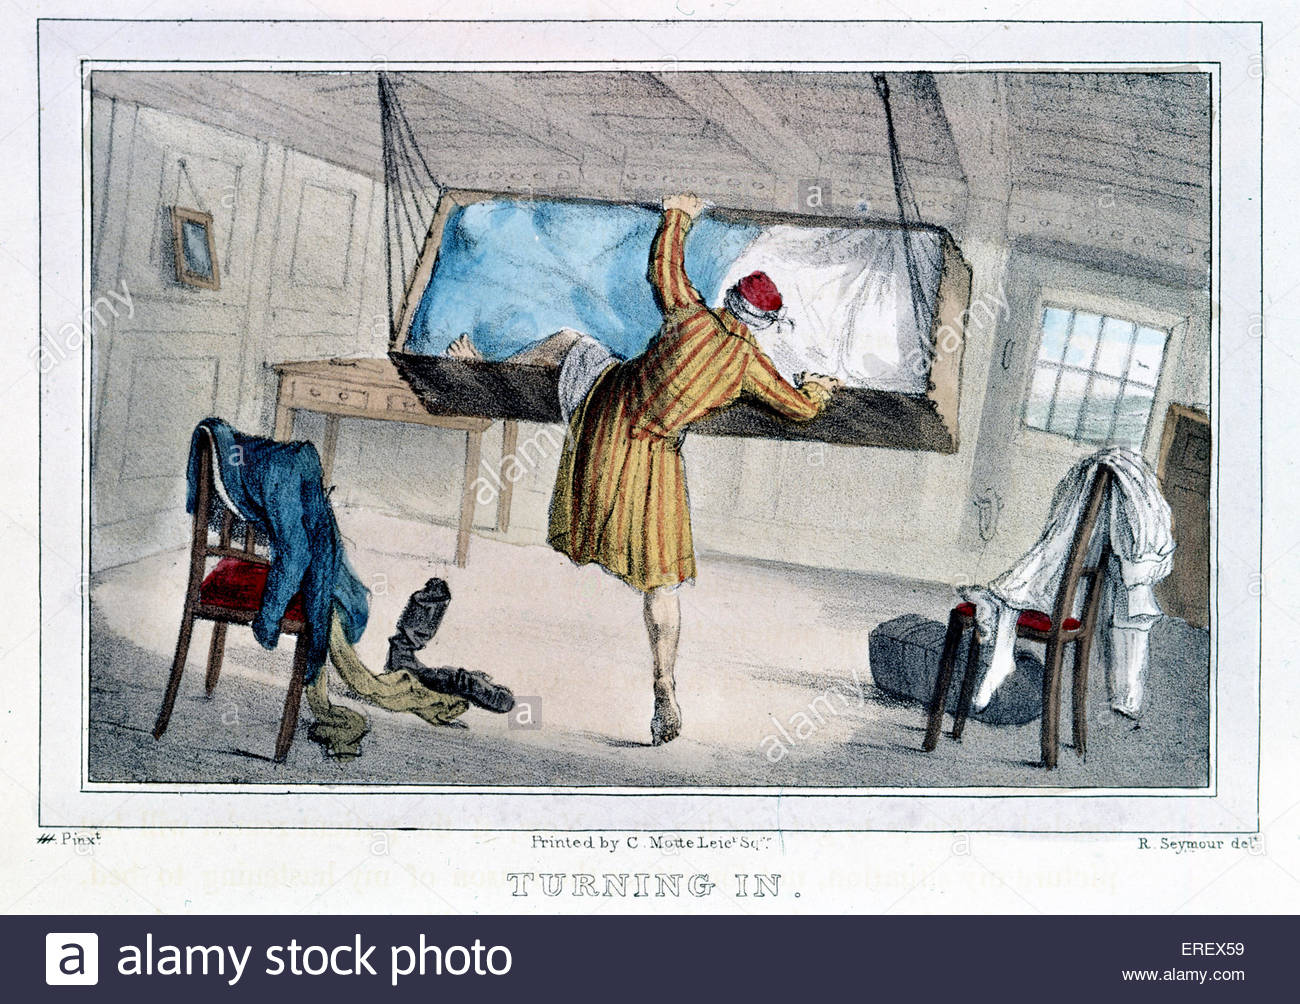 'Turning In  - naval caricature, 1831. Quarters of high- ranking British officer on ship. Printed in London. - Stock Image